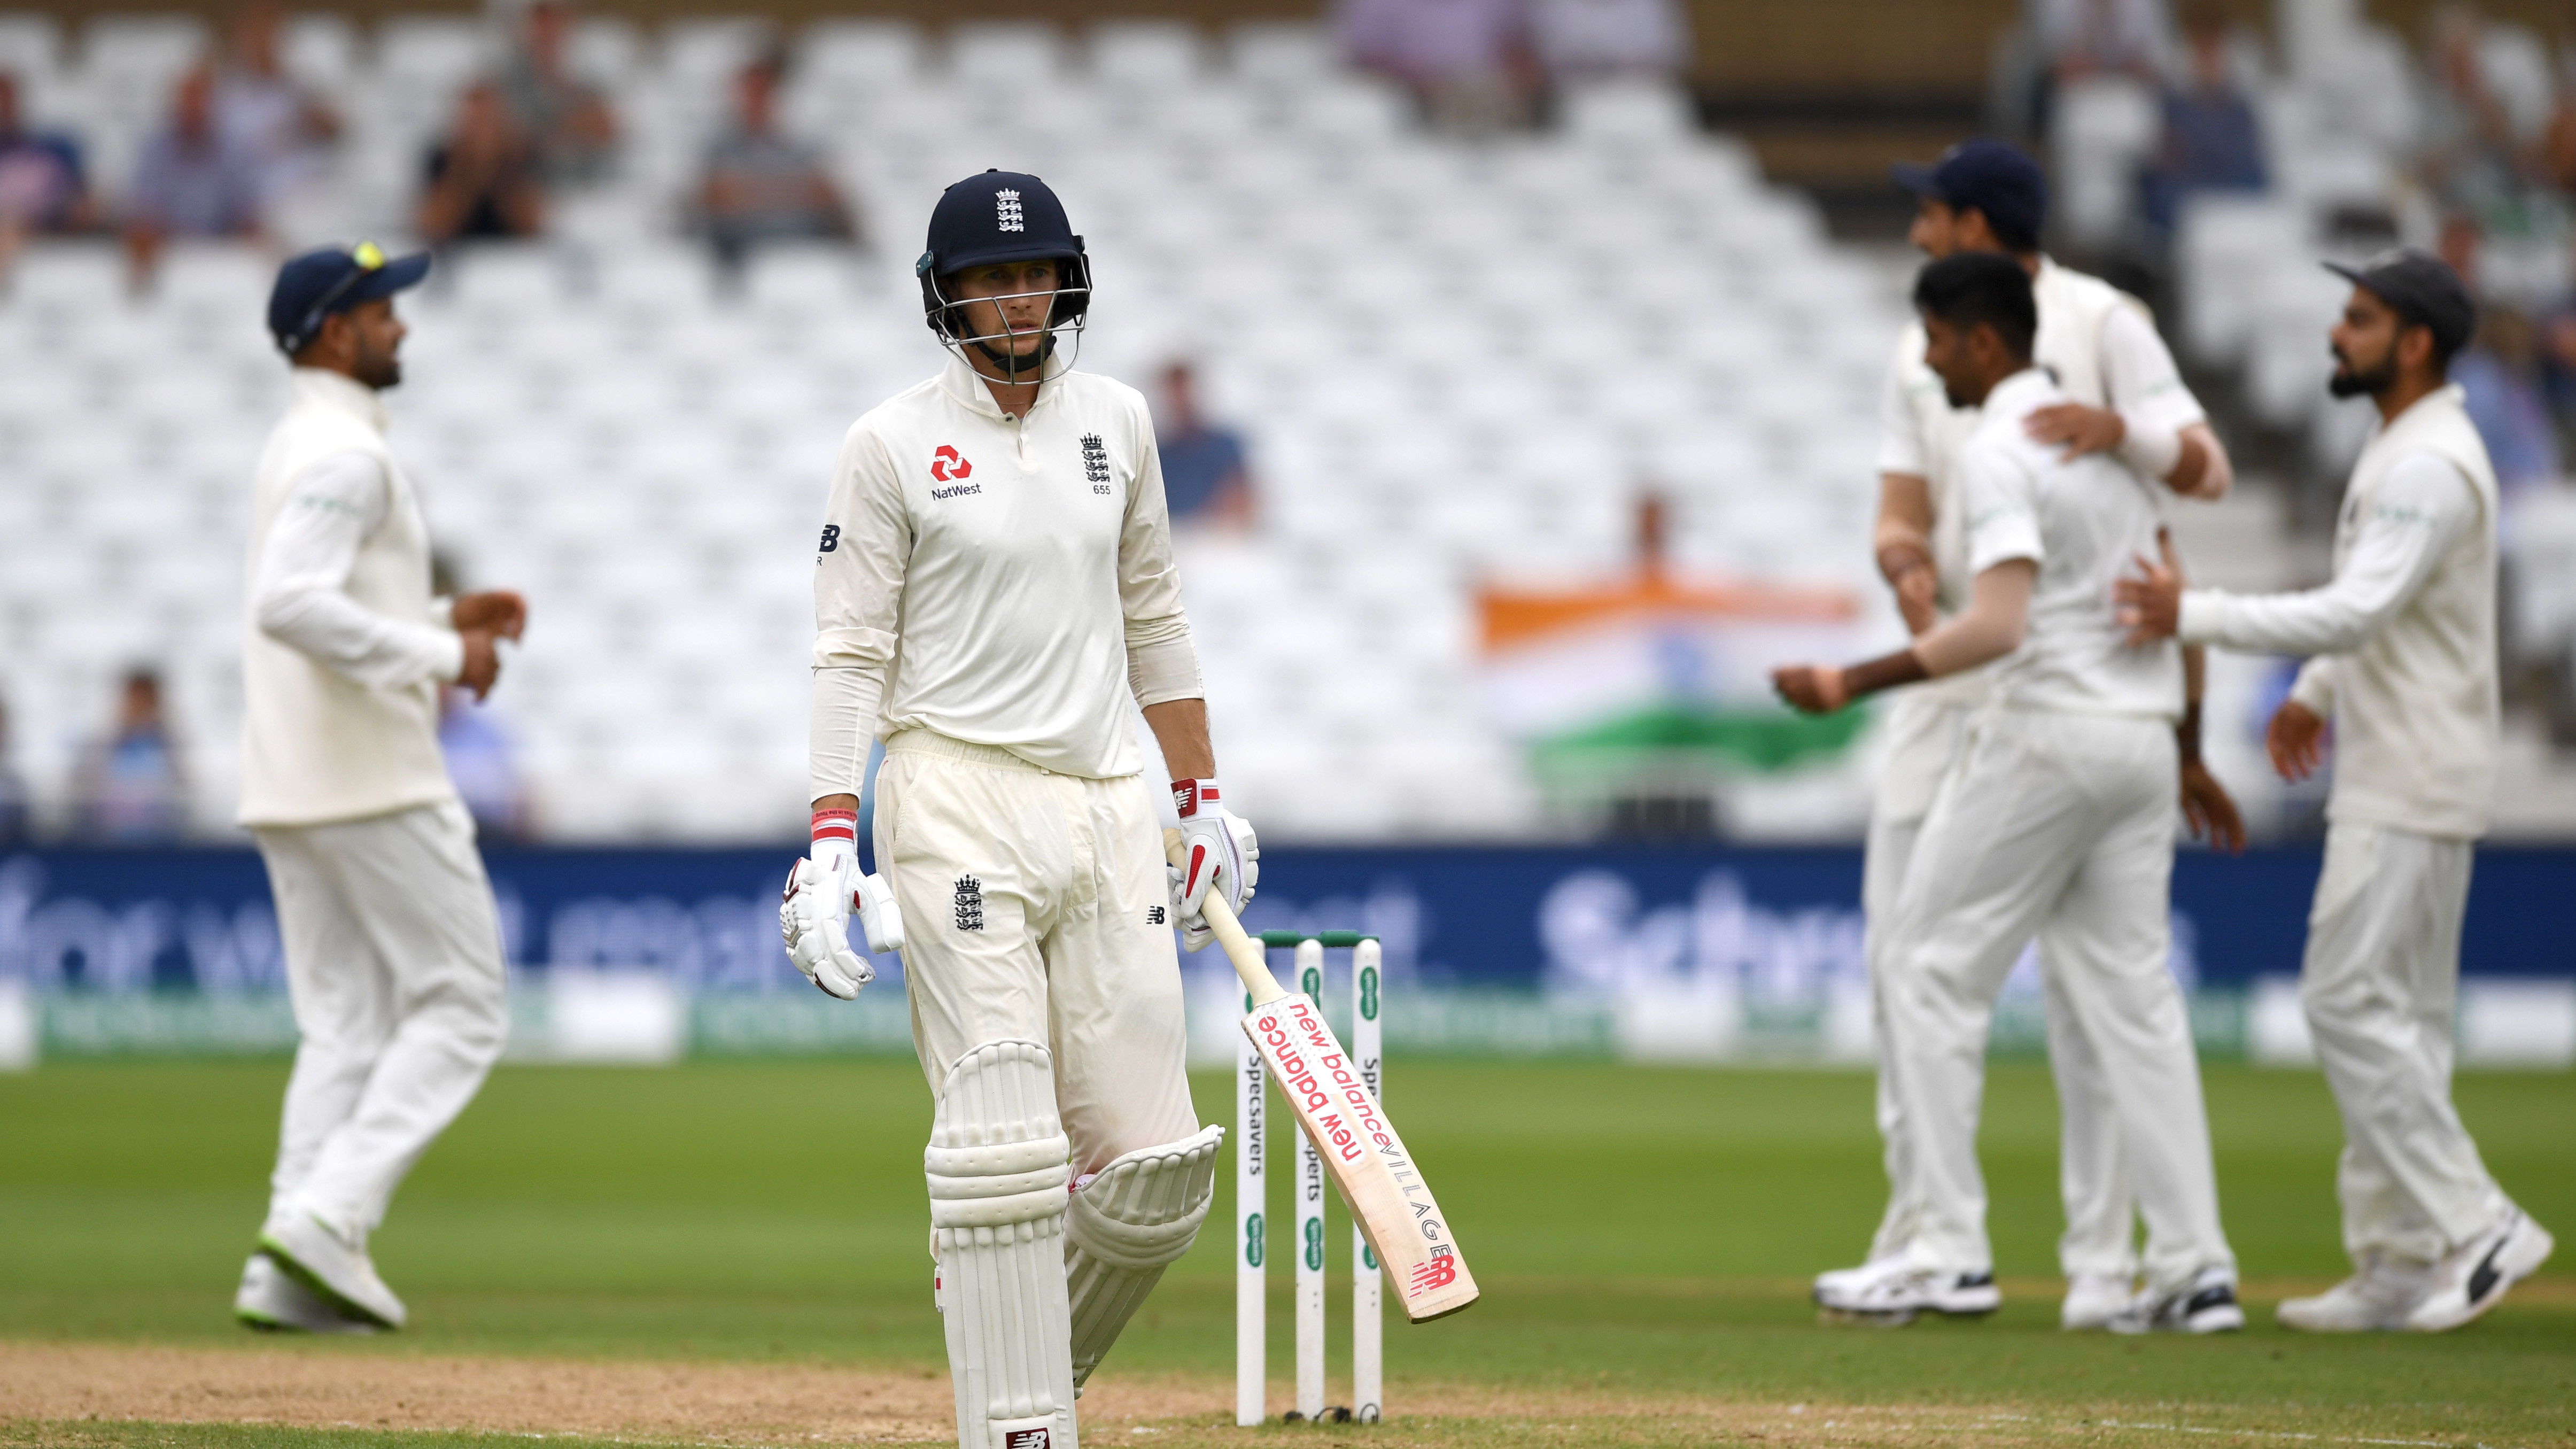 ENG vs IND 2018: England directs Joe Root to miss IPL and rest ahead of World Cup and Ashes next year